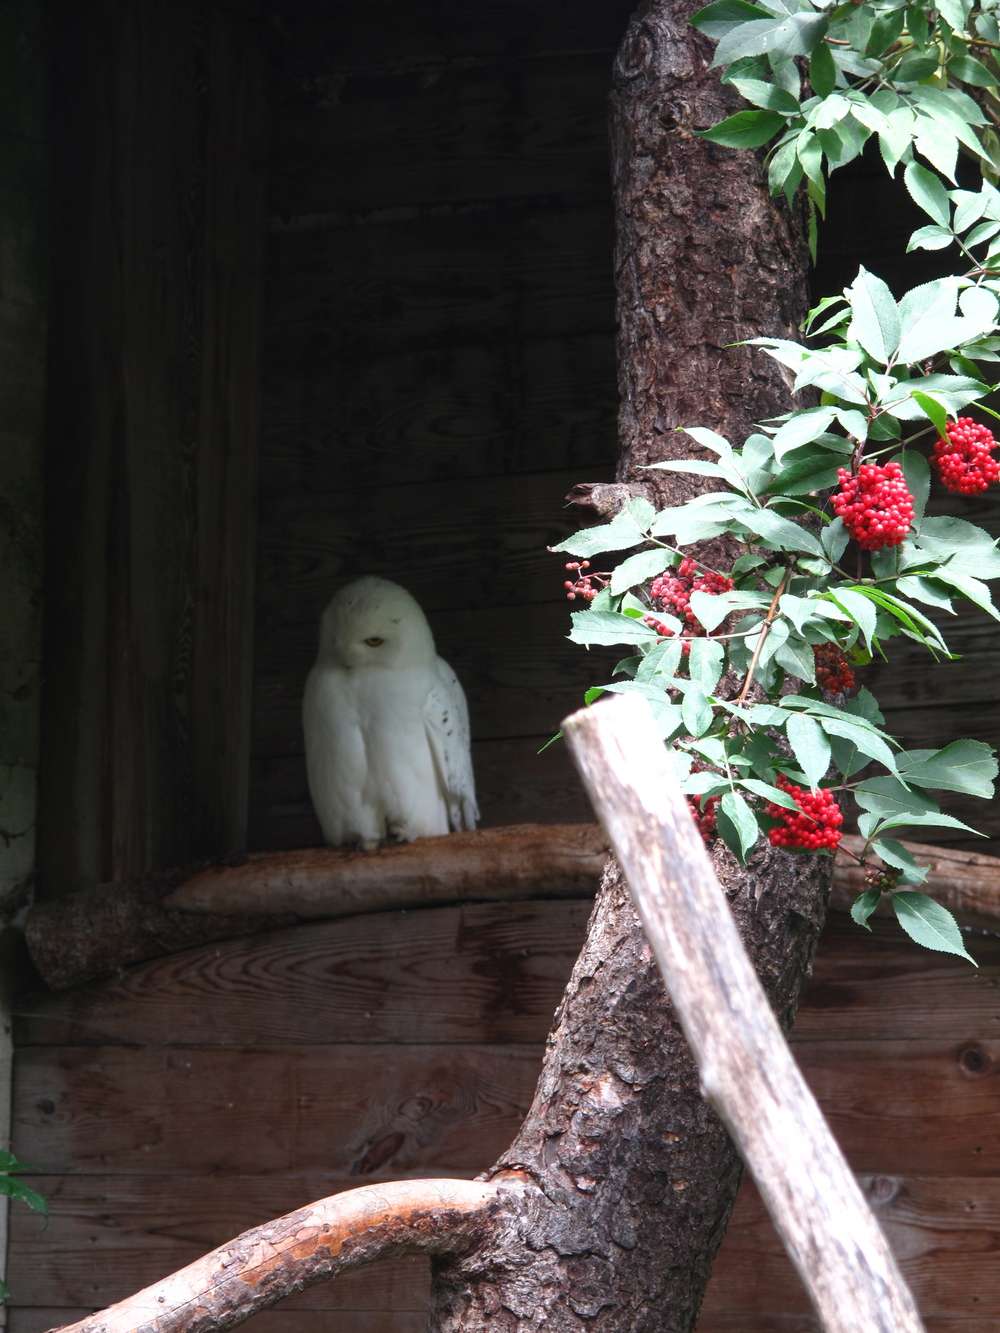 White owl and red berries.